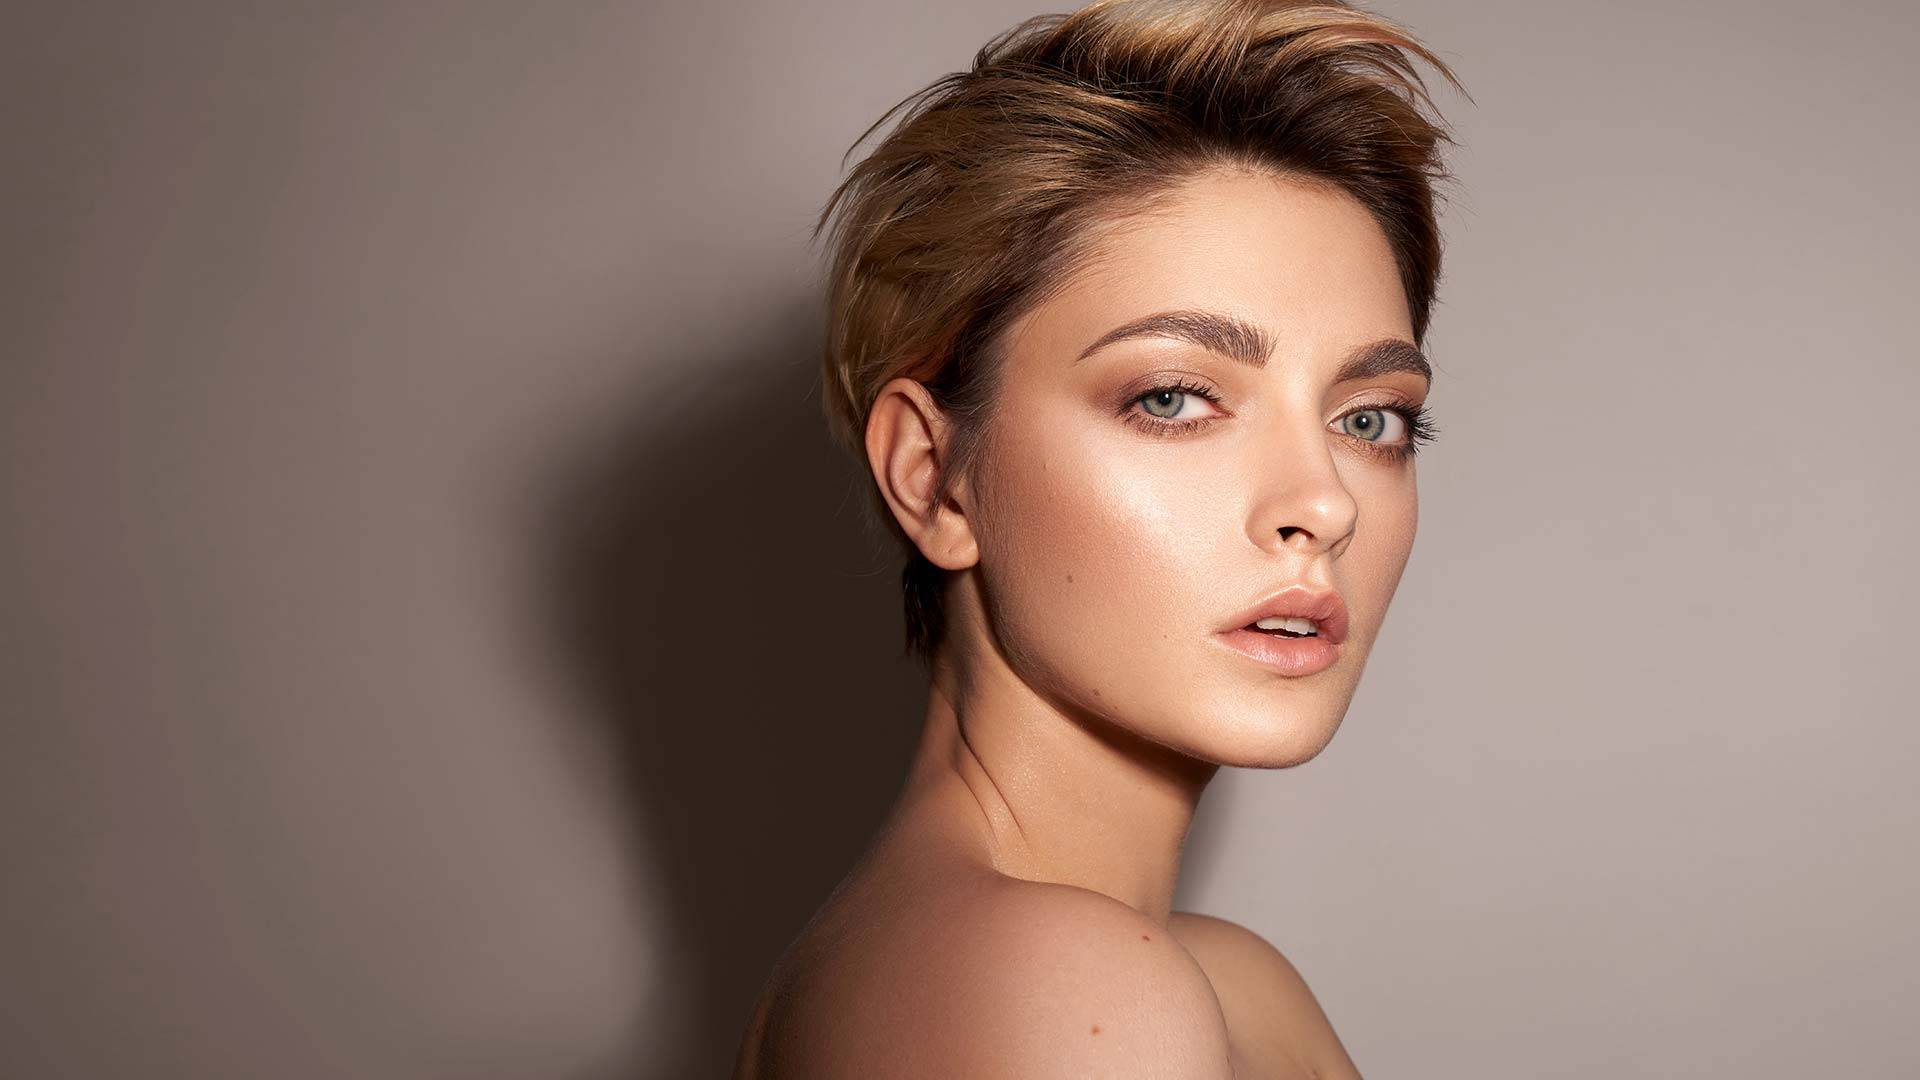 What Are The 4 Most Beautiful Short Haircuts For Autumn?